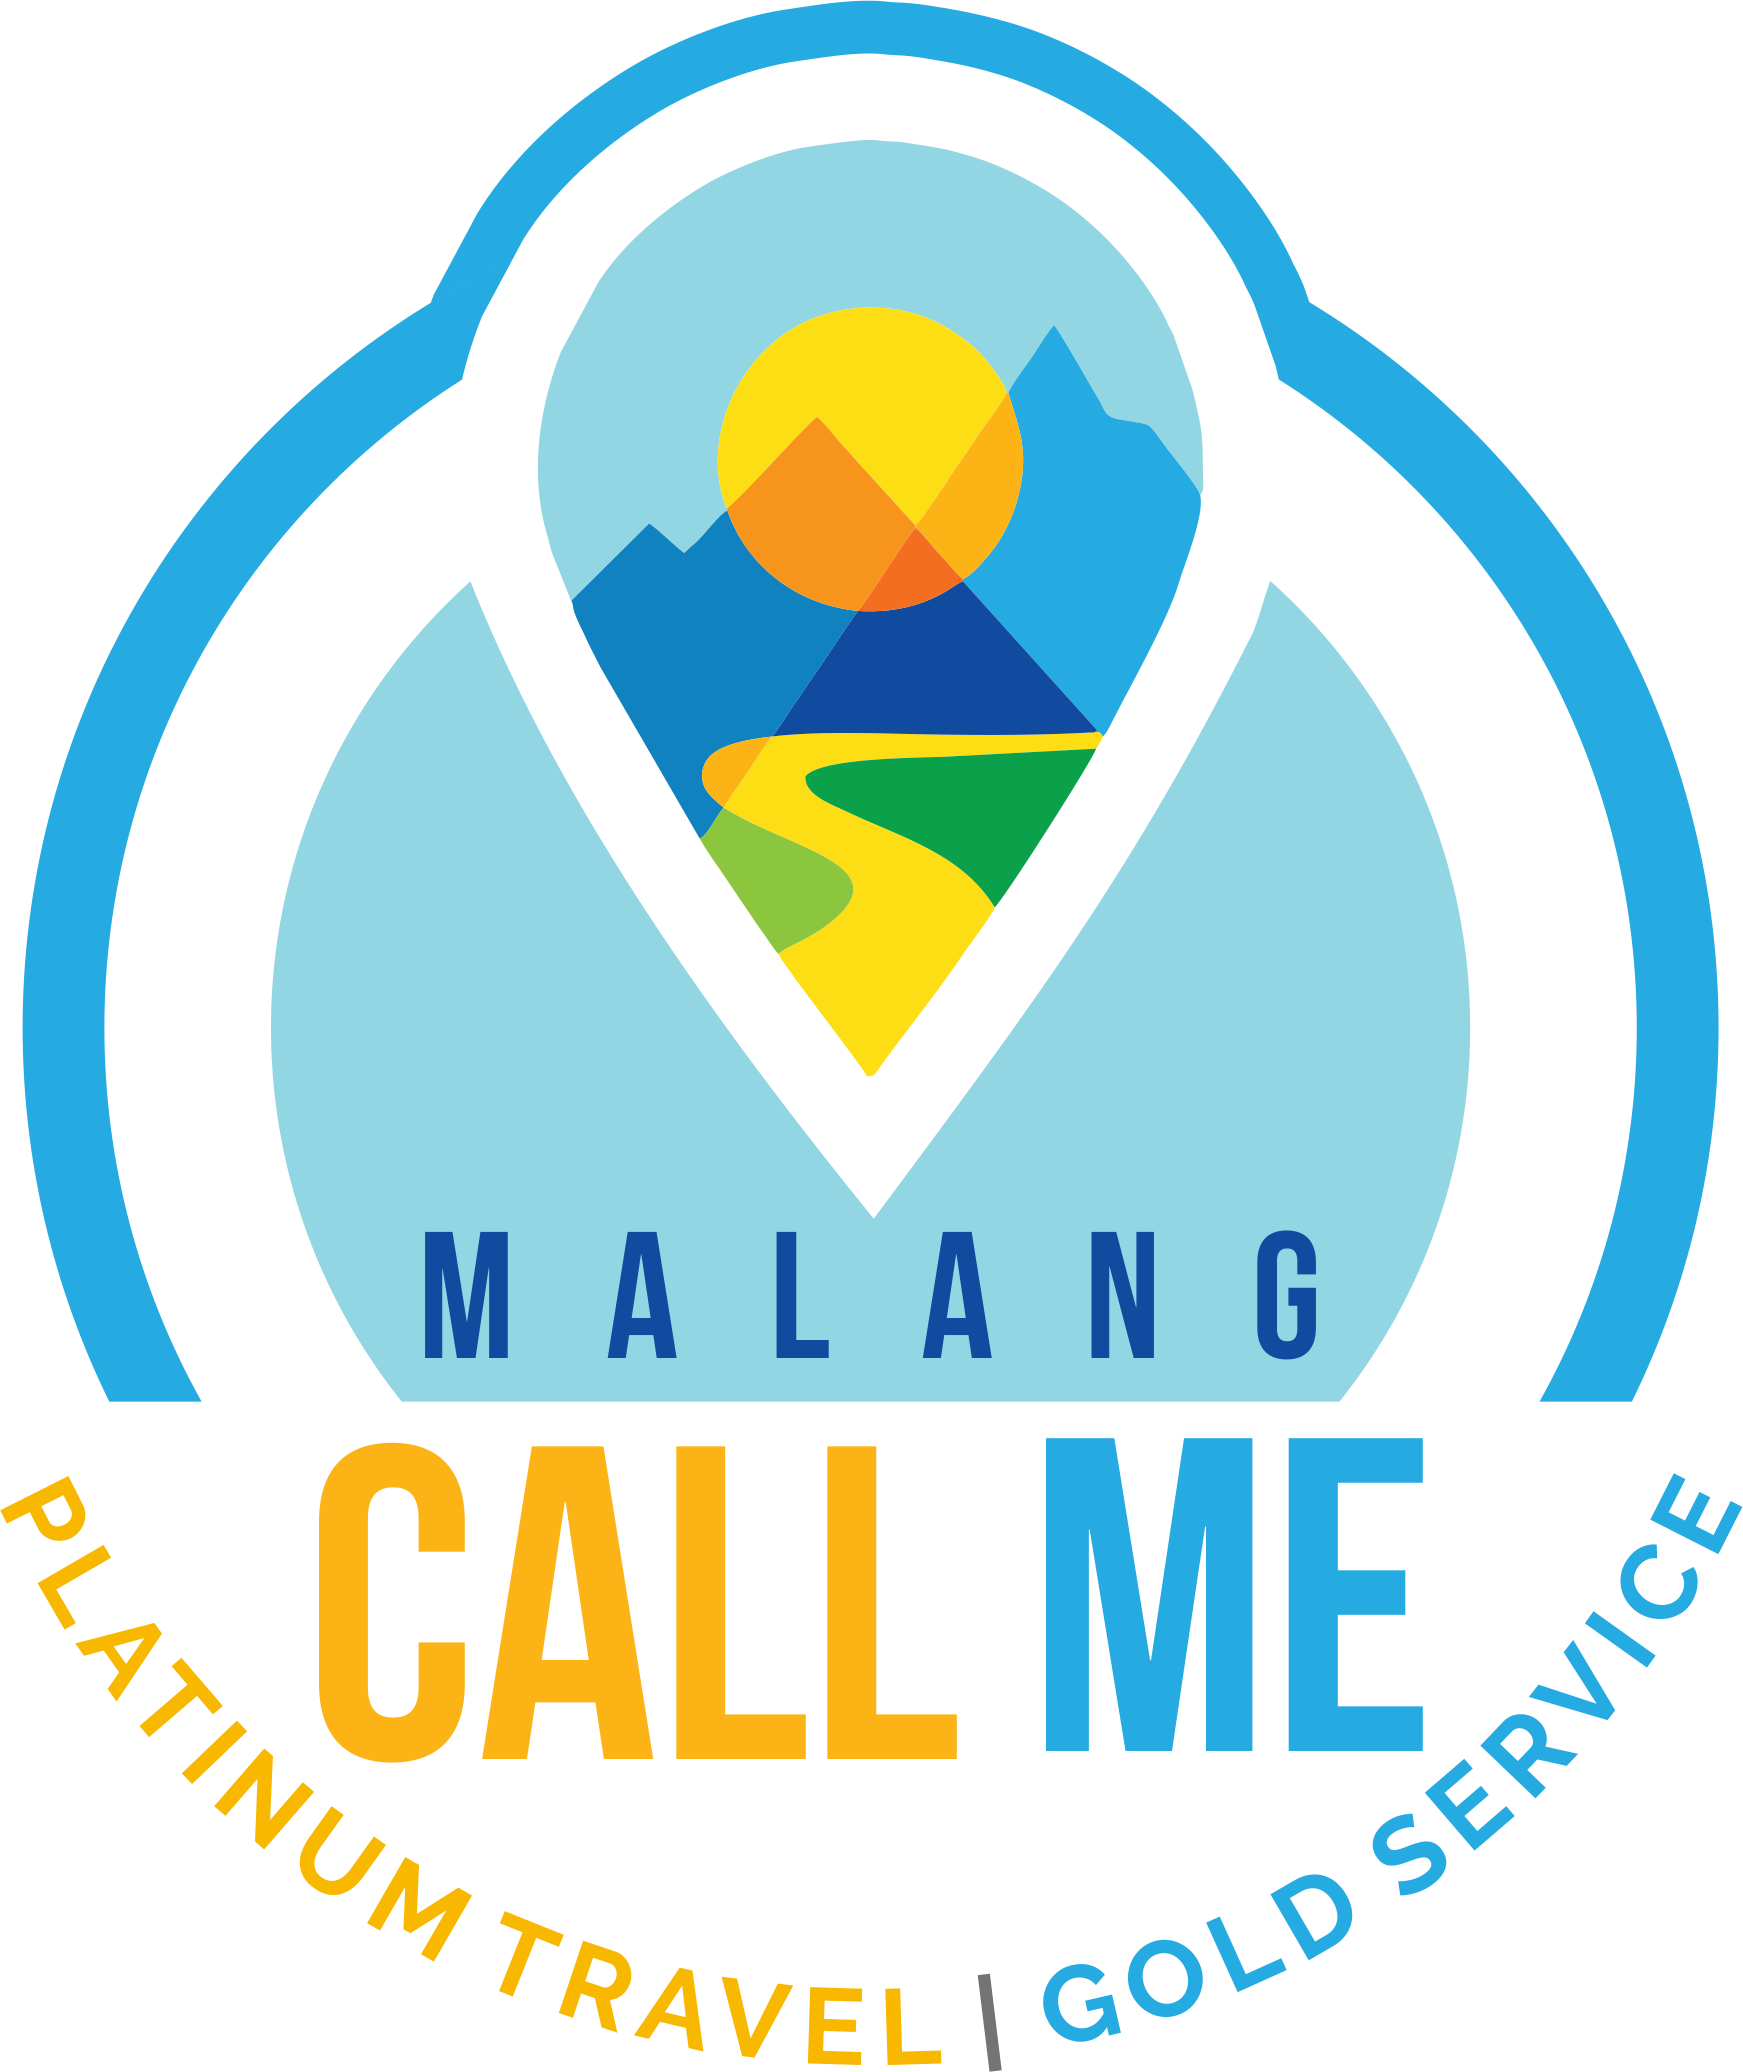 Call Me Travel Malang (Agen Tour and Travel Terbaik di Kota Malang)